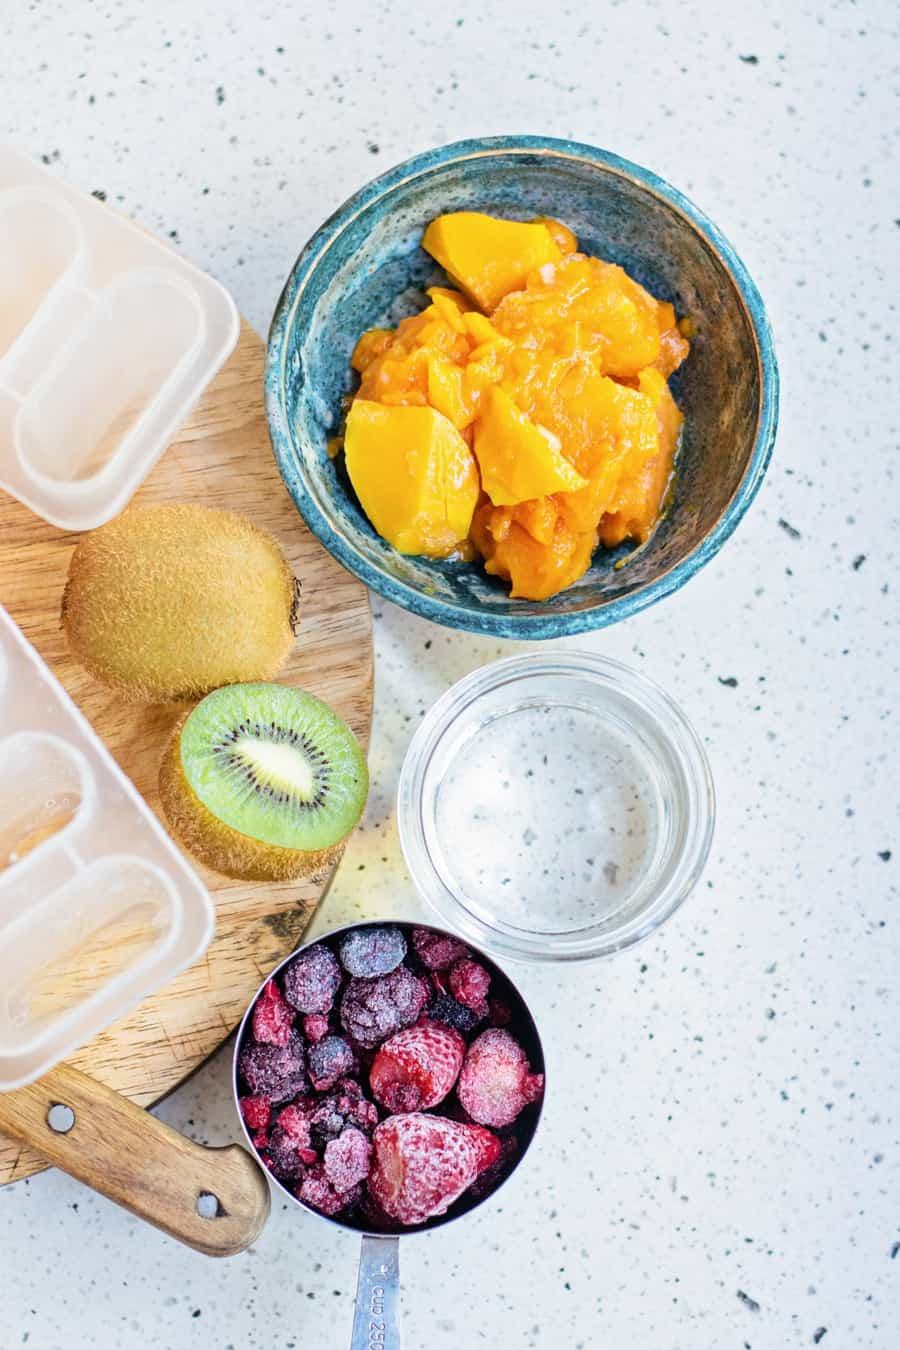 ingredients to make fresh fruit mango popsicles like pureed mango, frozen berries and kiwi fruit